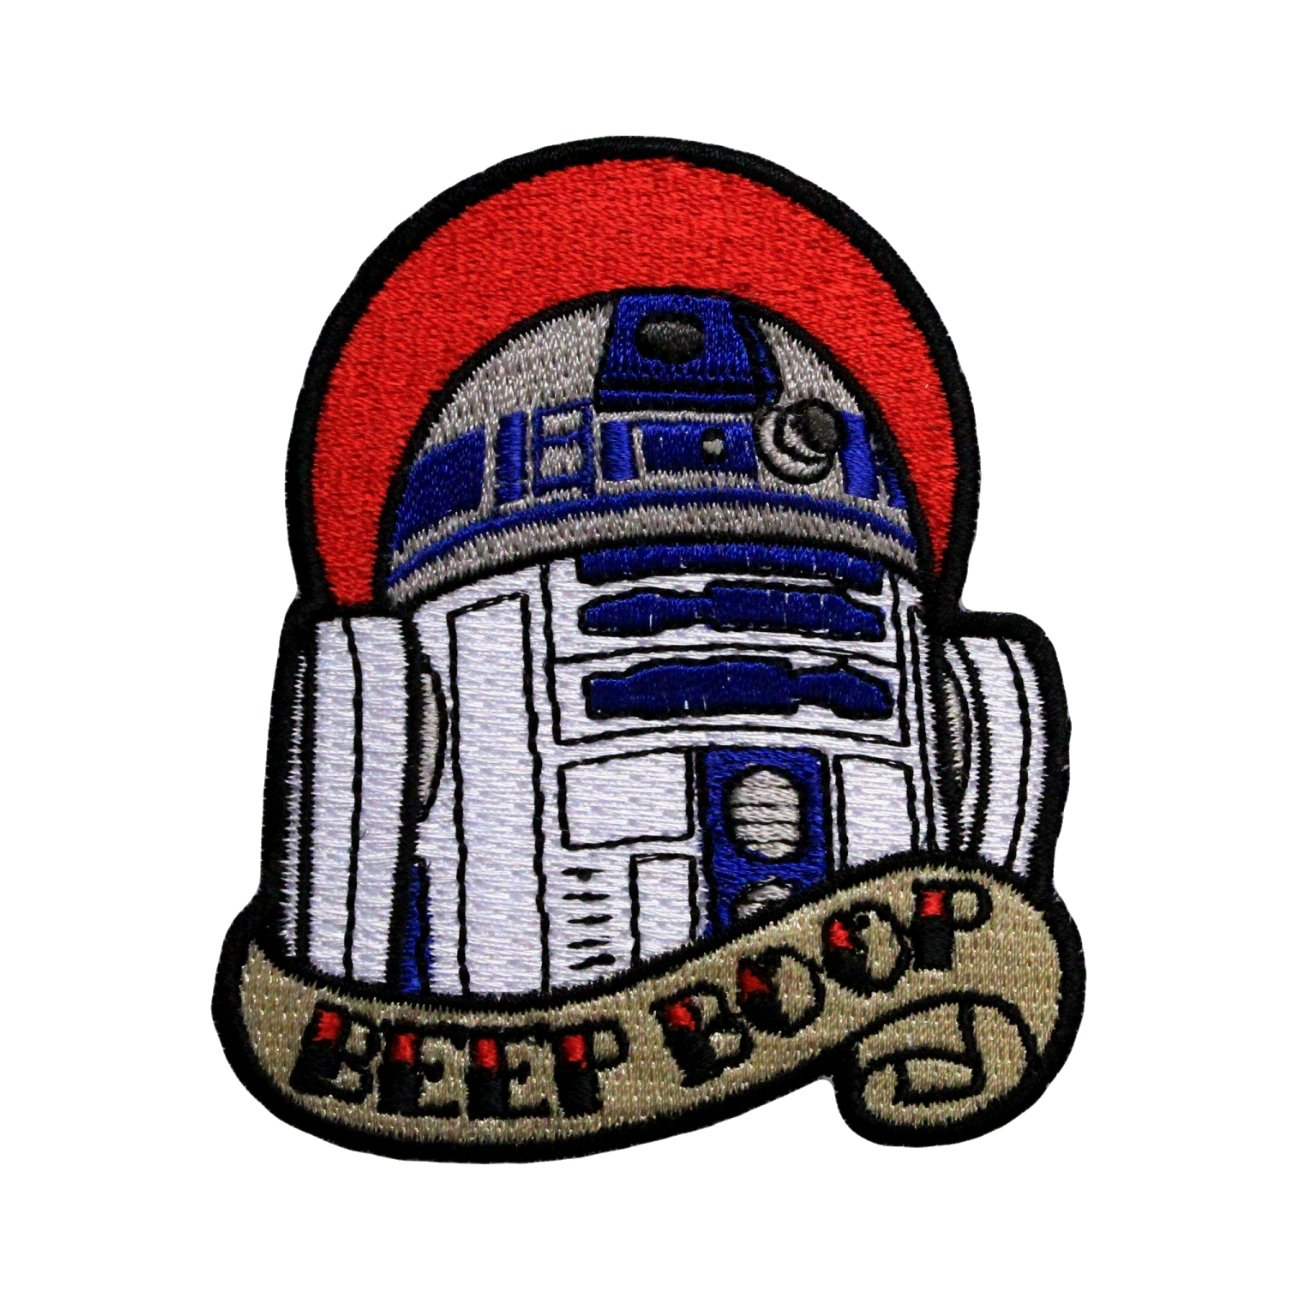 InspireMe Family Owned Star Wars R2D2 Beep Boop Sew/Iron On Patch 3' x 2.75'